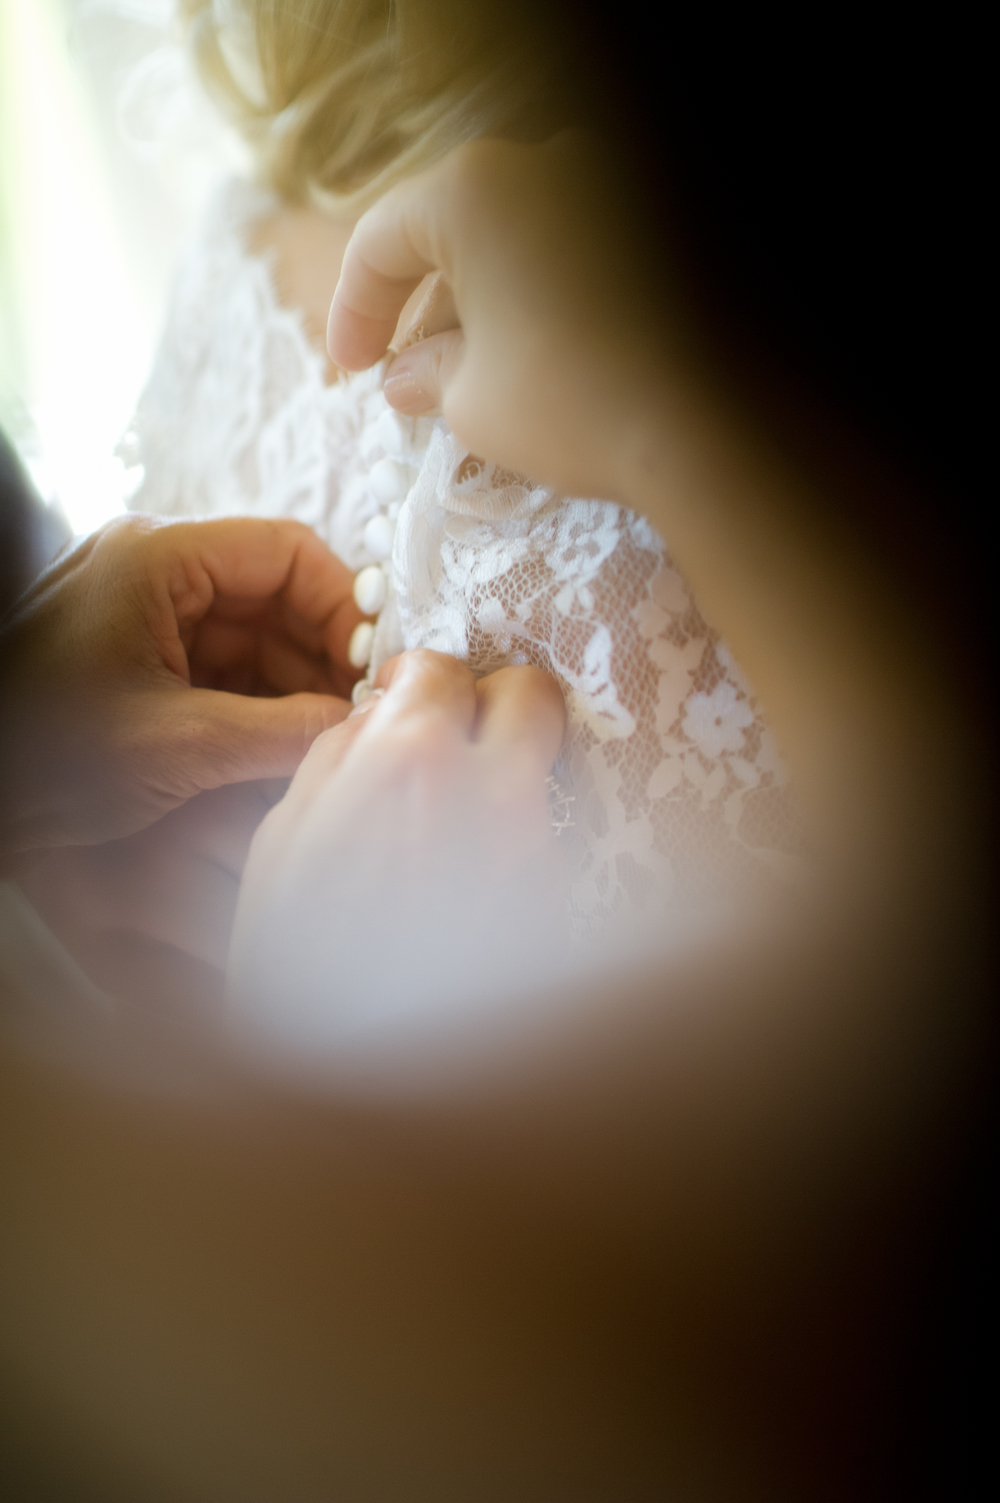 Destin-Wedding-Photographry-GettingReady-dress-details.jpg